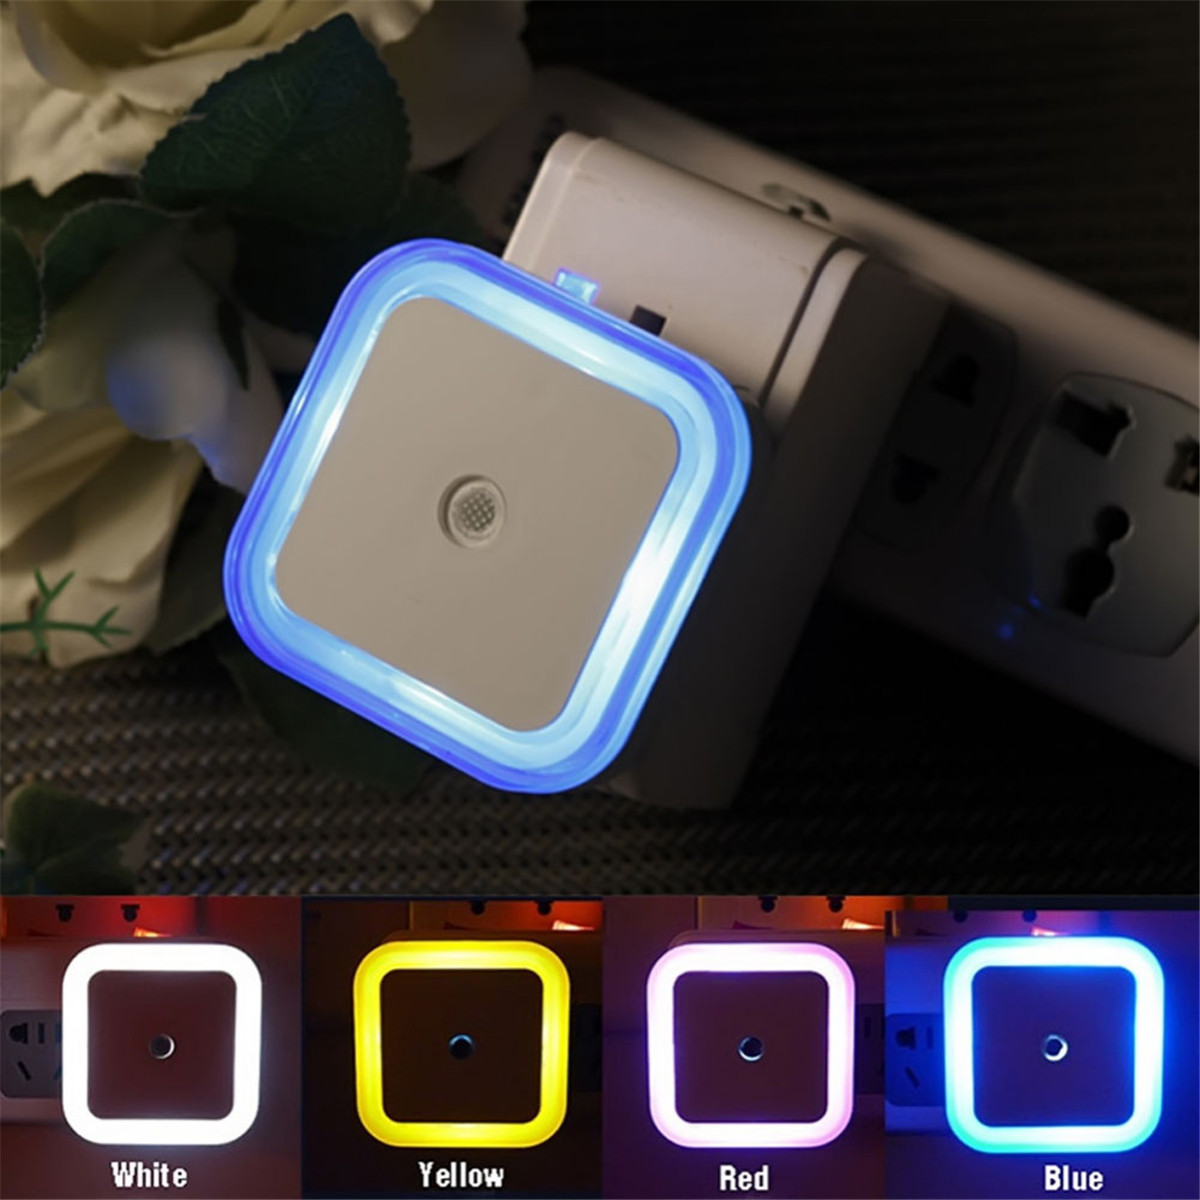 LED Night Light Mini Light Sensor Control EU/US Plug Nightlight Lamp For Children Kids Living Room Bedroom Lighting